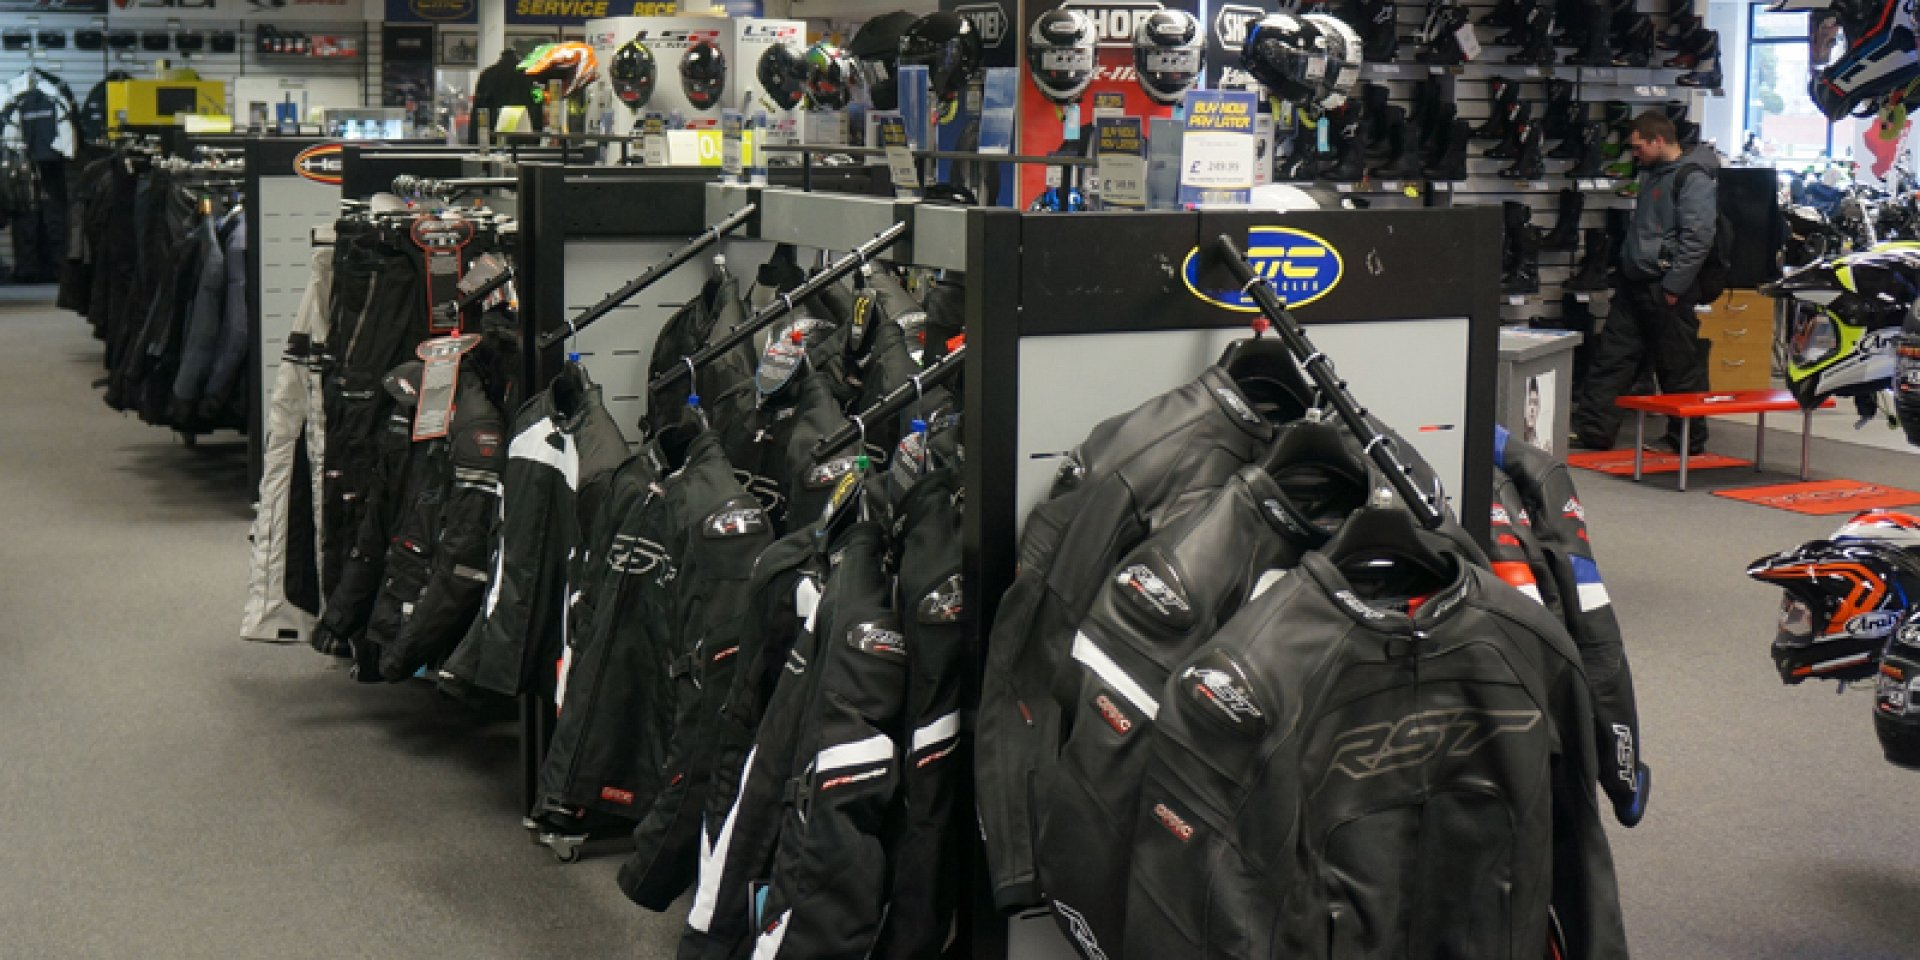 Motorcycle Clothing Shop